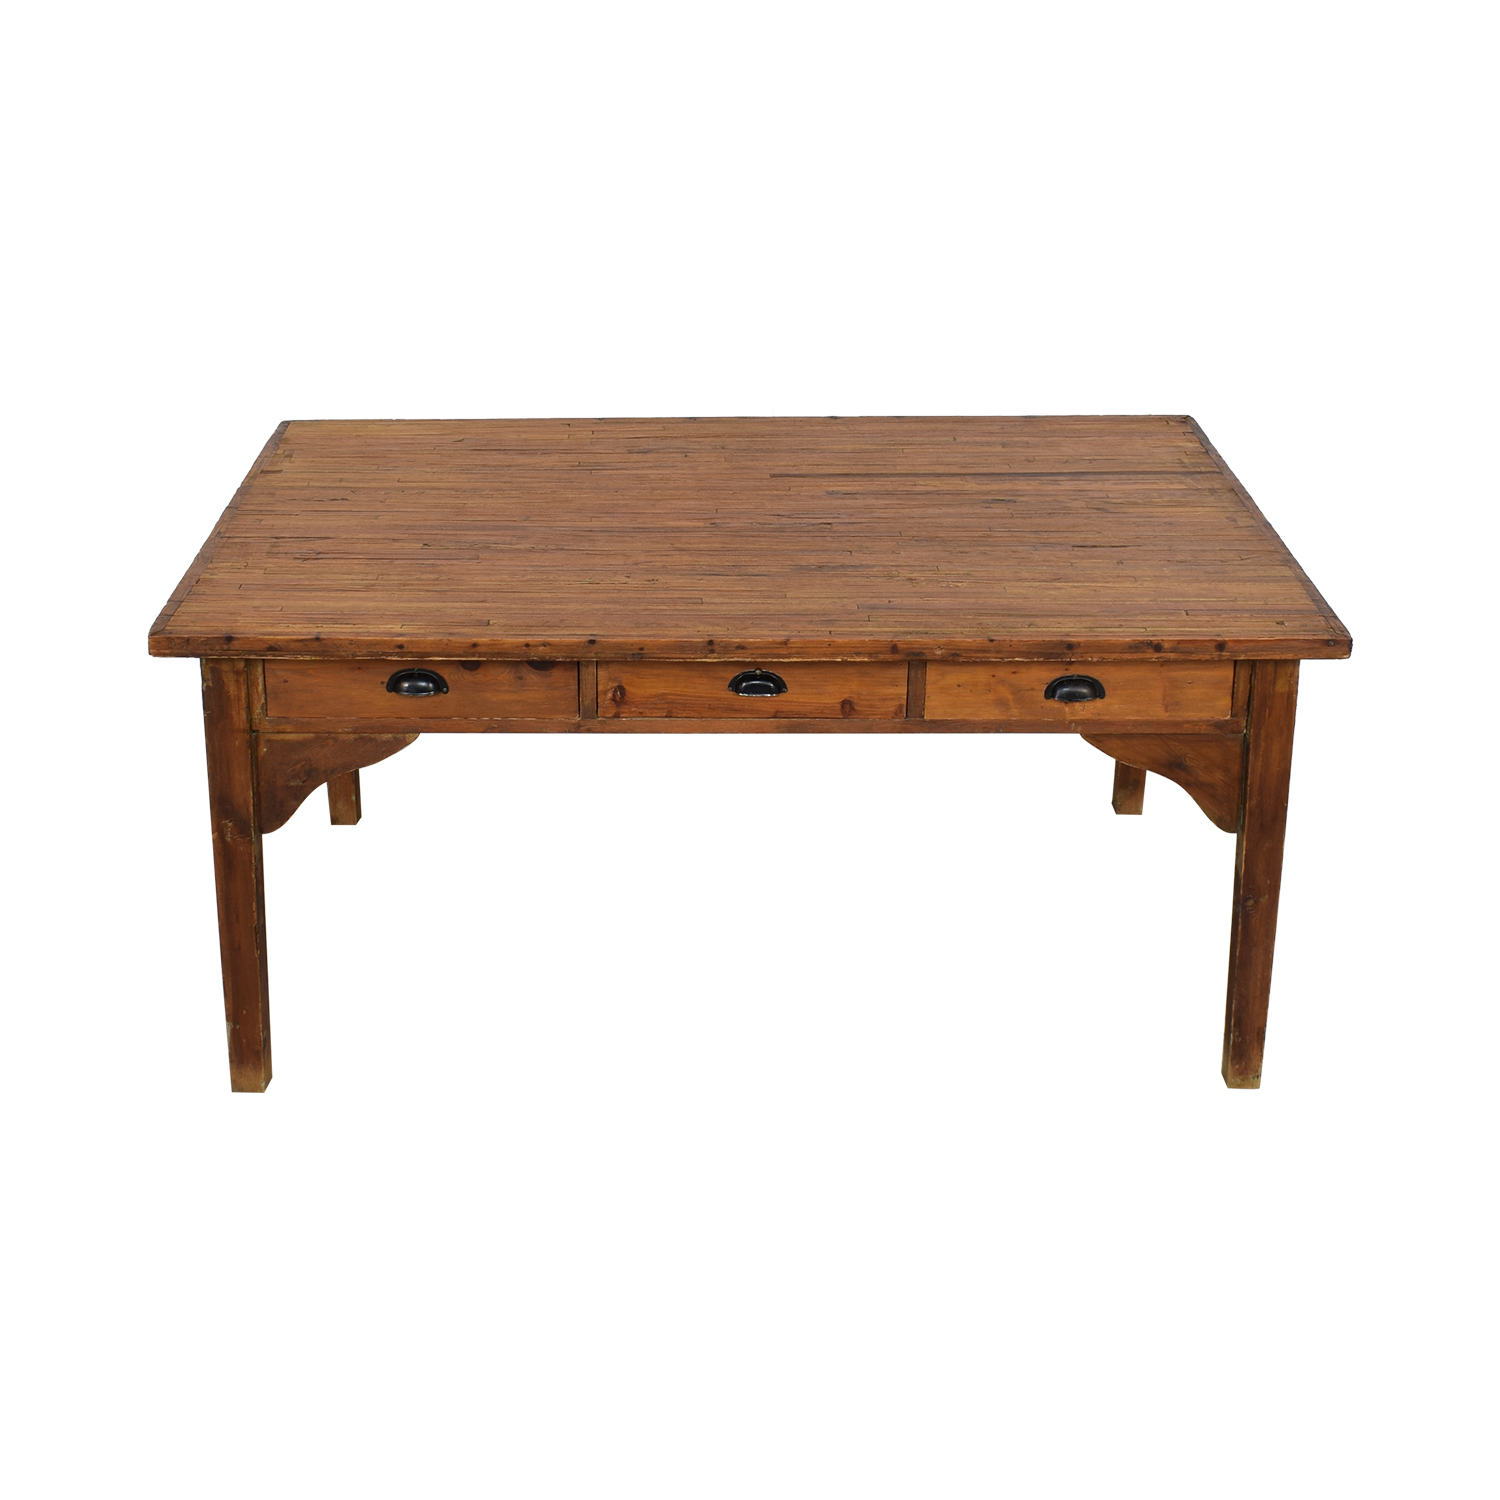 Handmade Spanish Dining Table for sale